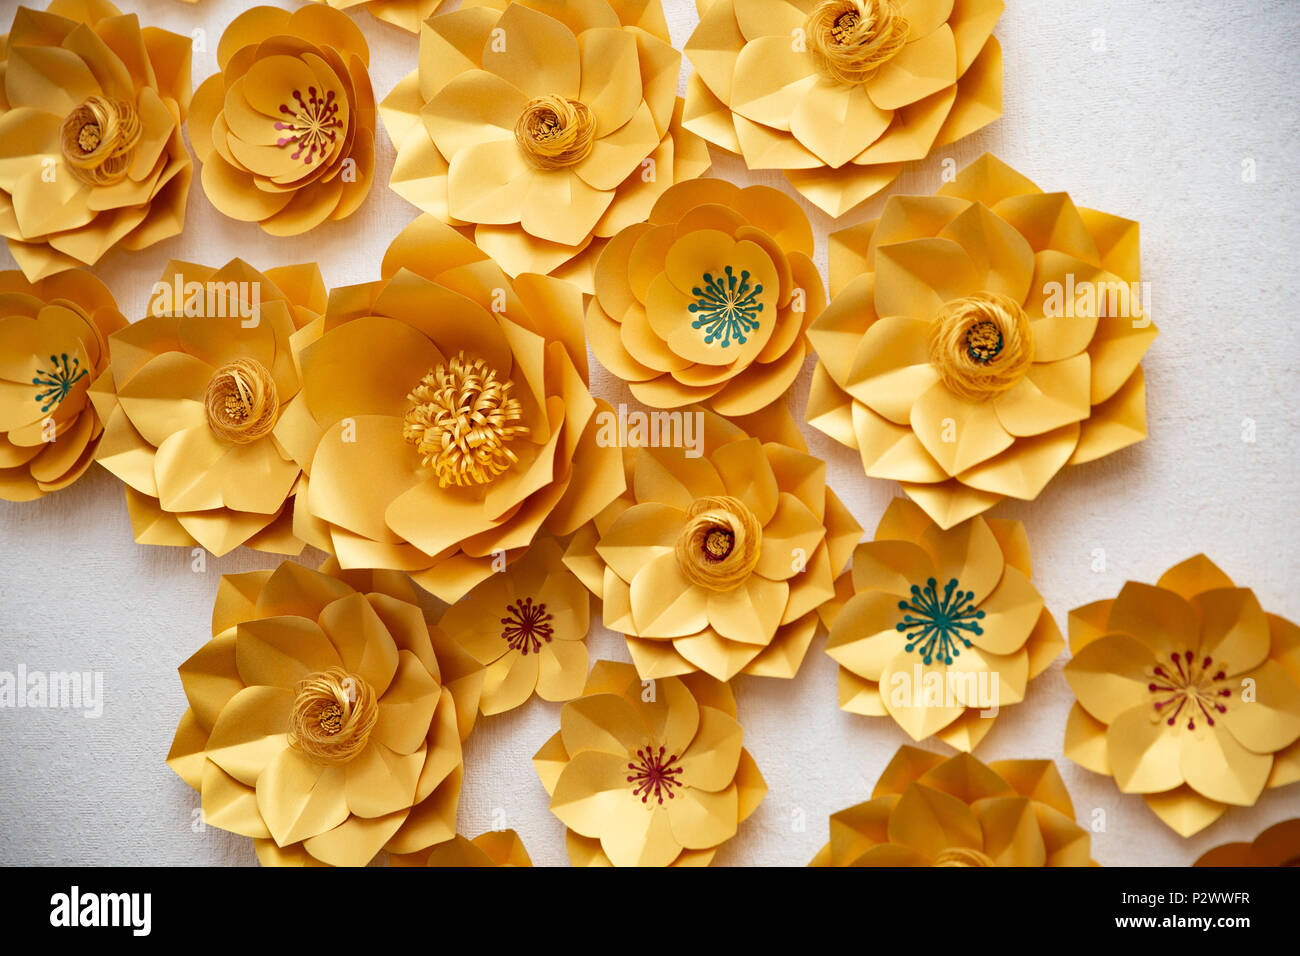 Floral Arrangement Of Yellow Paper Flowers On A White Backgrounde